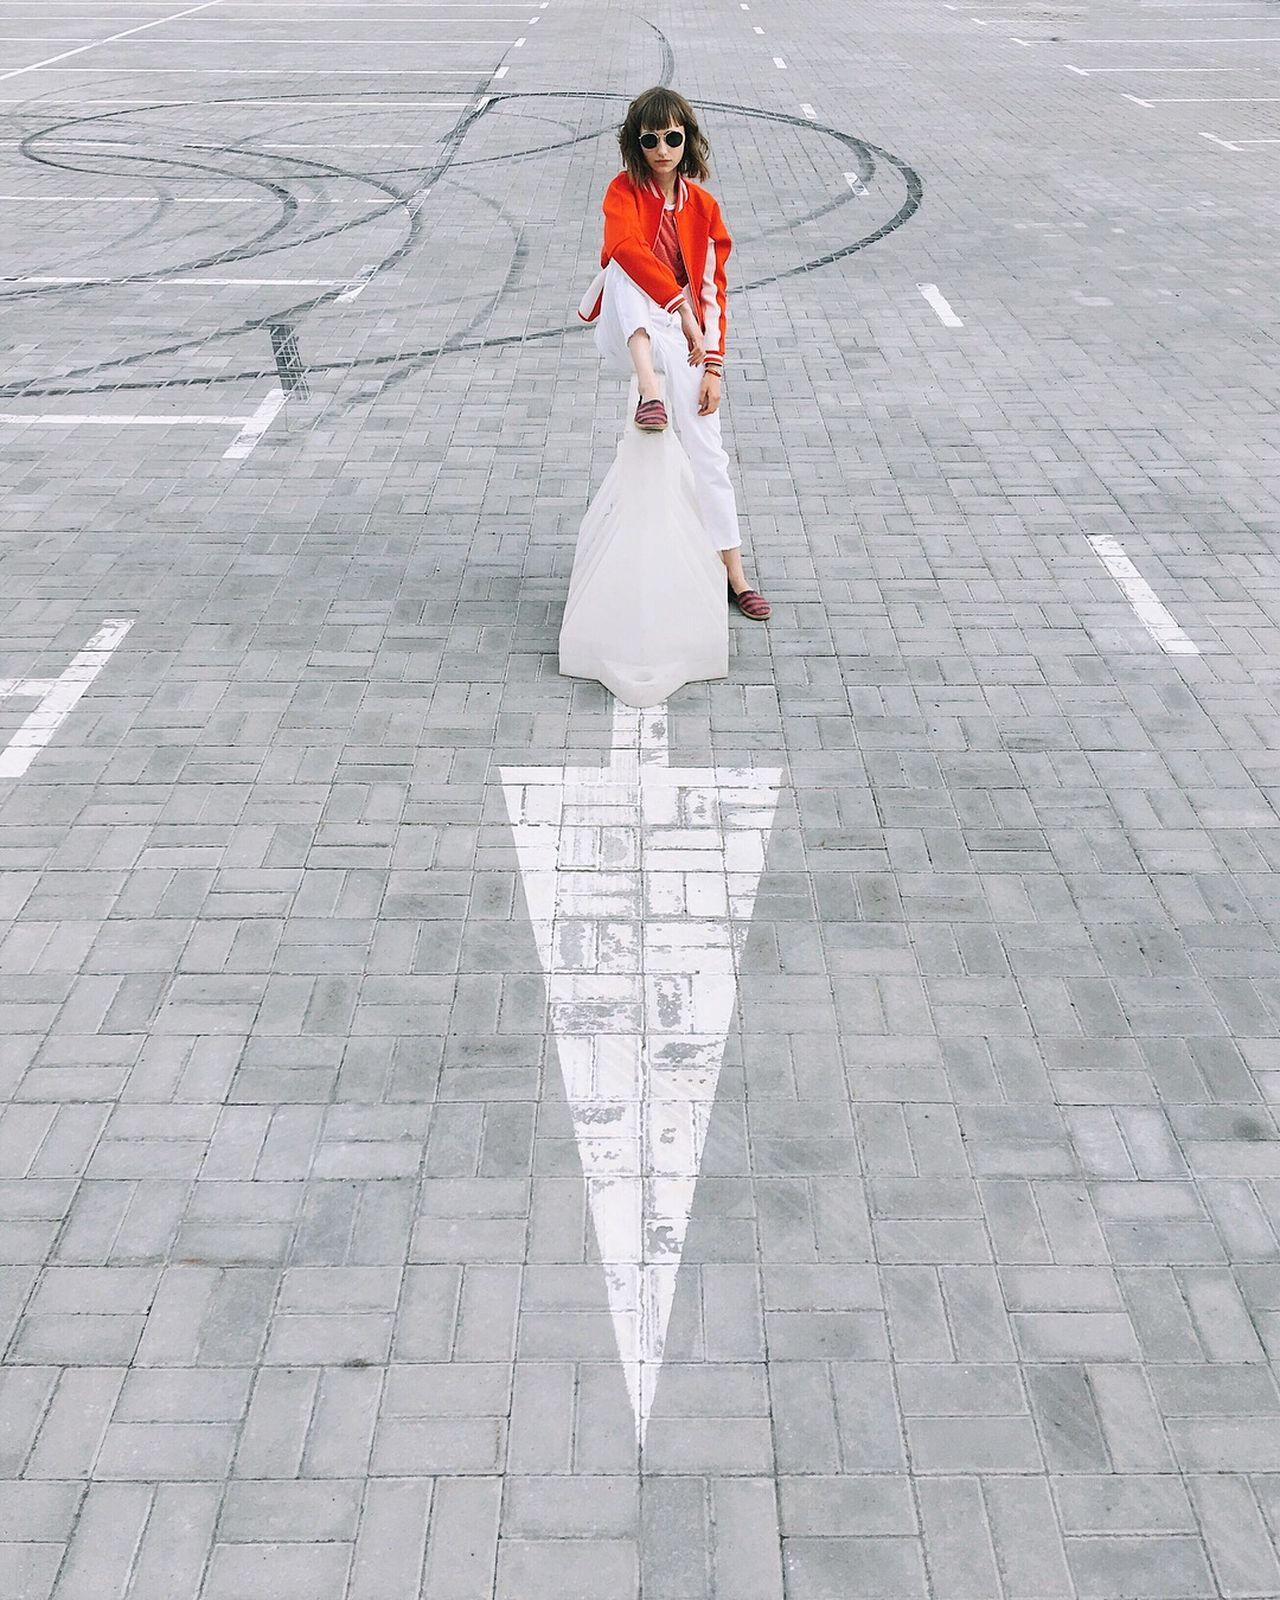 The right way! Full Length One Person One Young Woman Only Only Women One Woman Only People Portrait Looking At Camera Smiling Adult Road Fashion Bestoftheday Best EyeEm Shot Minimalism